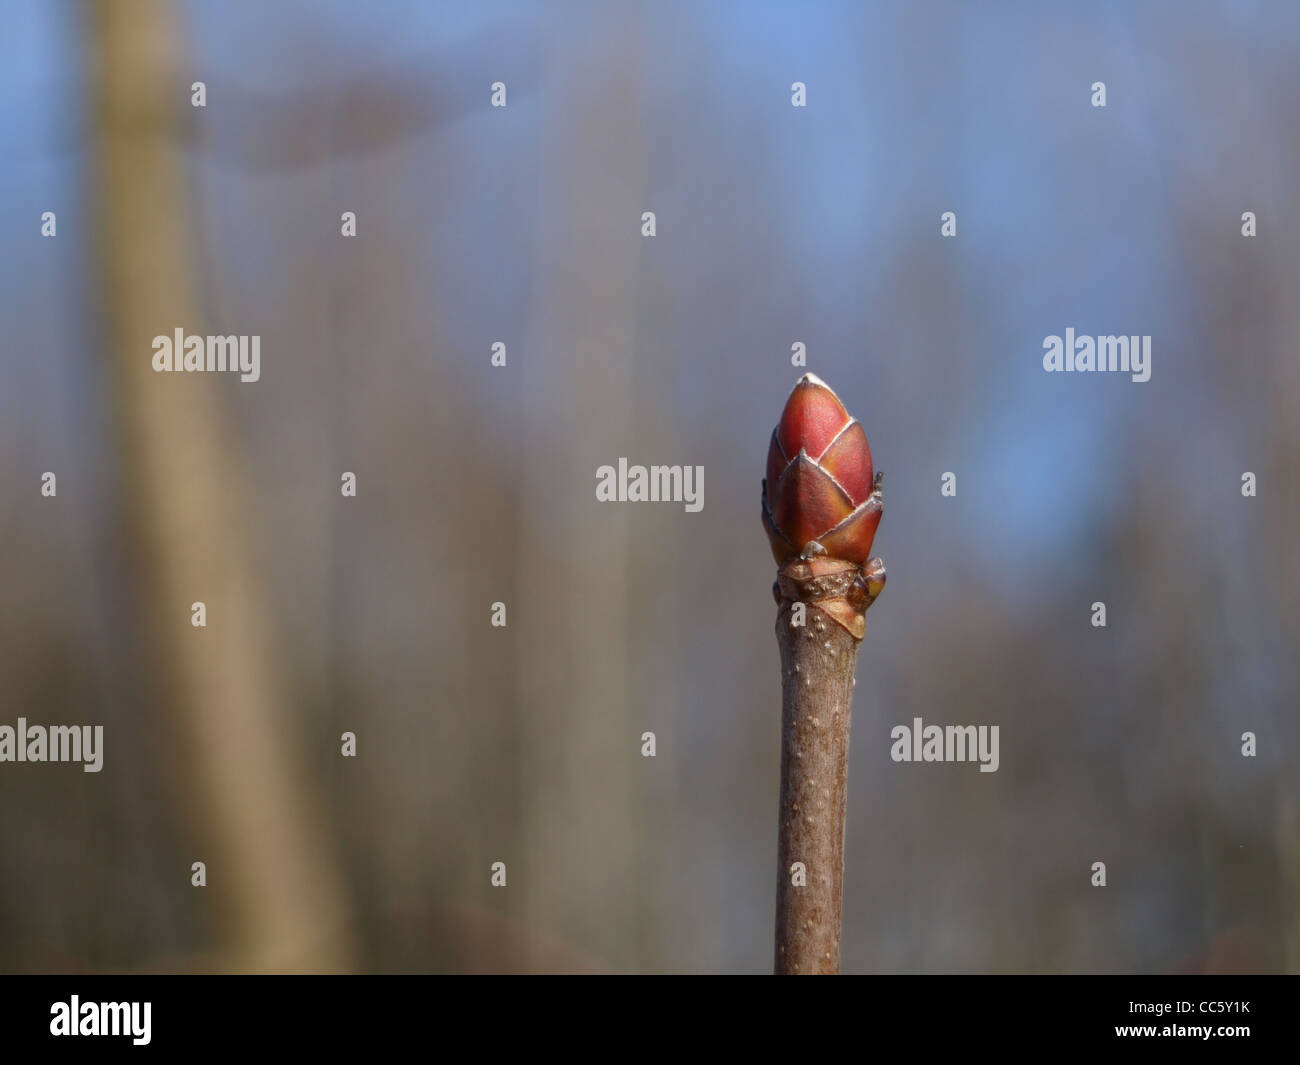 bud from Norway Maple / Acer platanoides / Knospe vom Spitzahorn Stock Photo